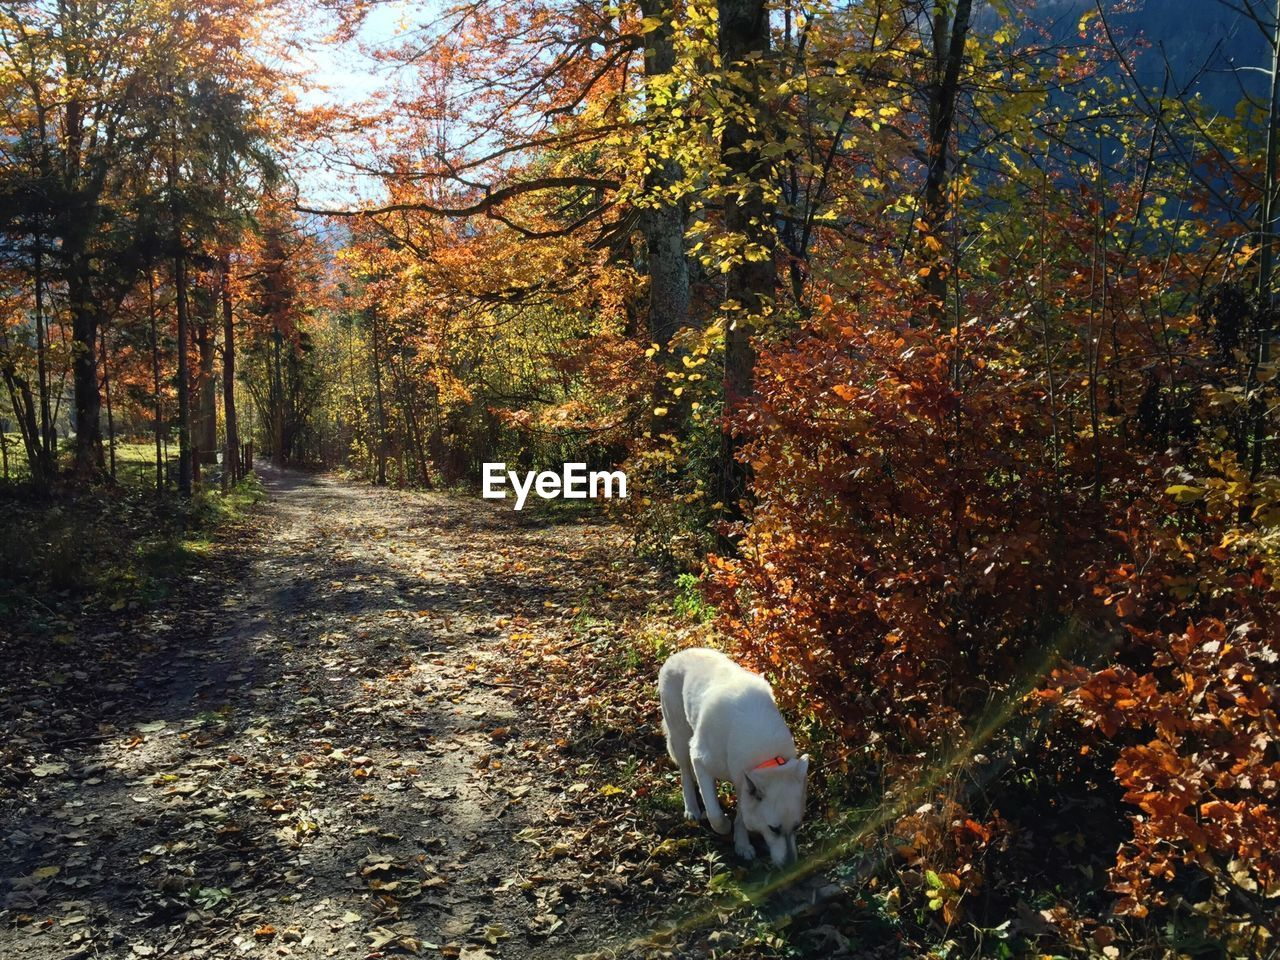 tree, autumn, nature, change, one animal, animal themes, leaf, day, forest, growth, beauty in nature, tranquility, pets, domestic animals, dog, tranquil scene, scenics, outdoors, no people, branch, mammal